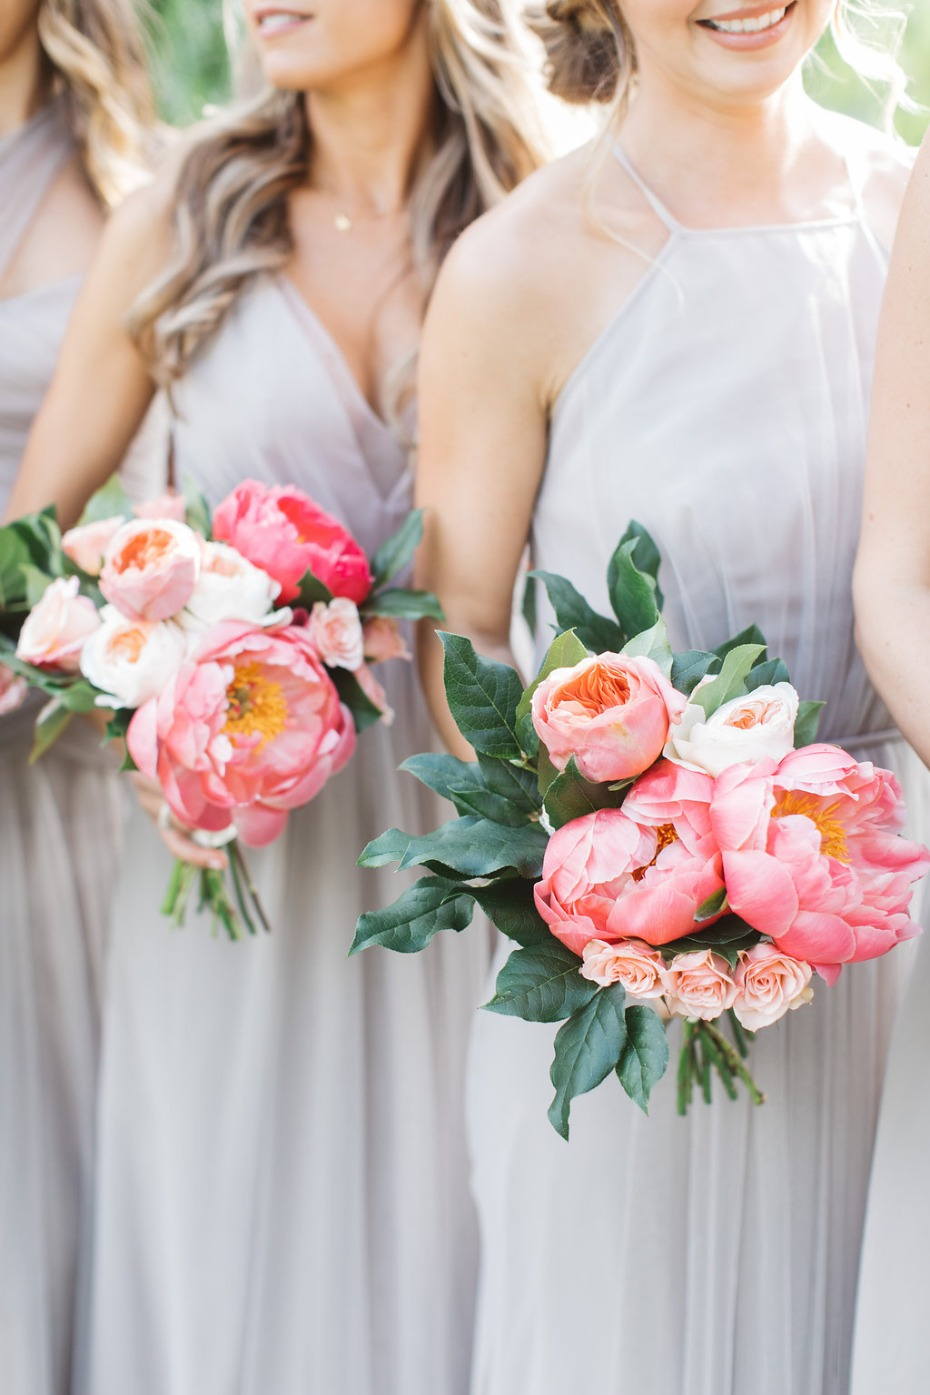 Beautiful peony and rose bouquets